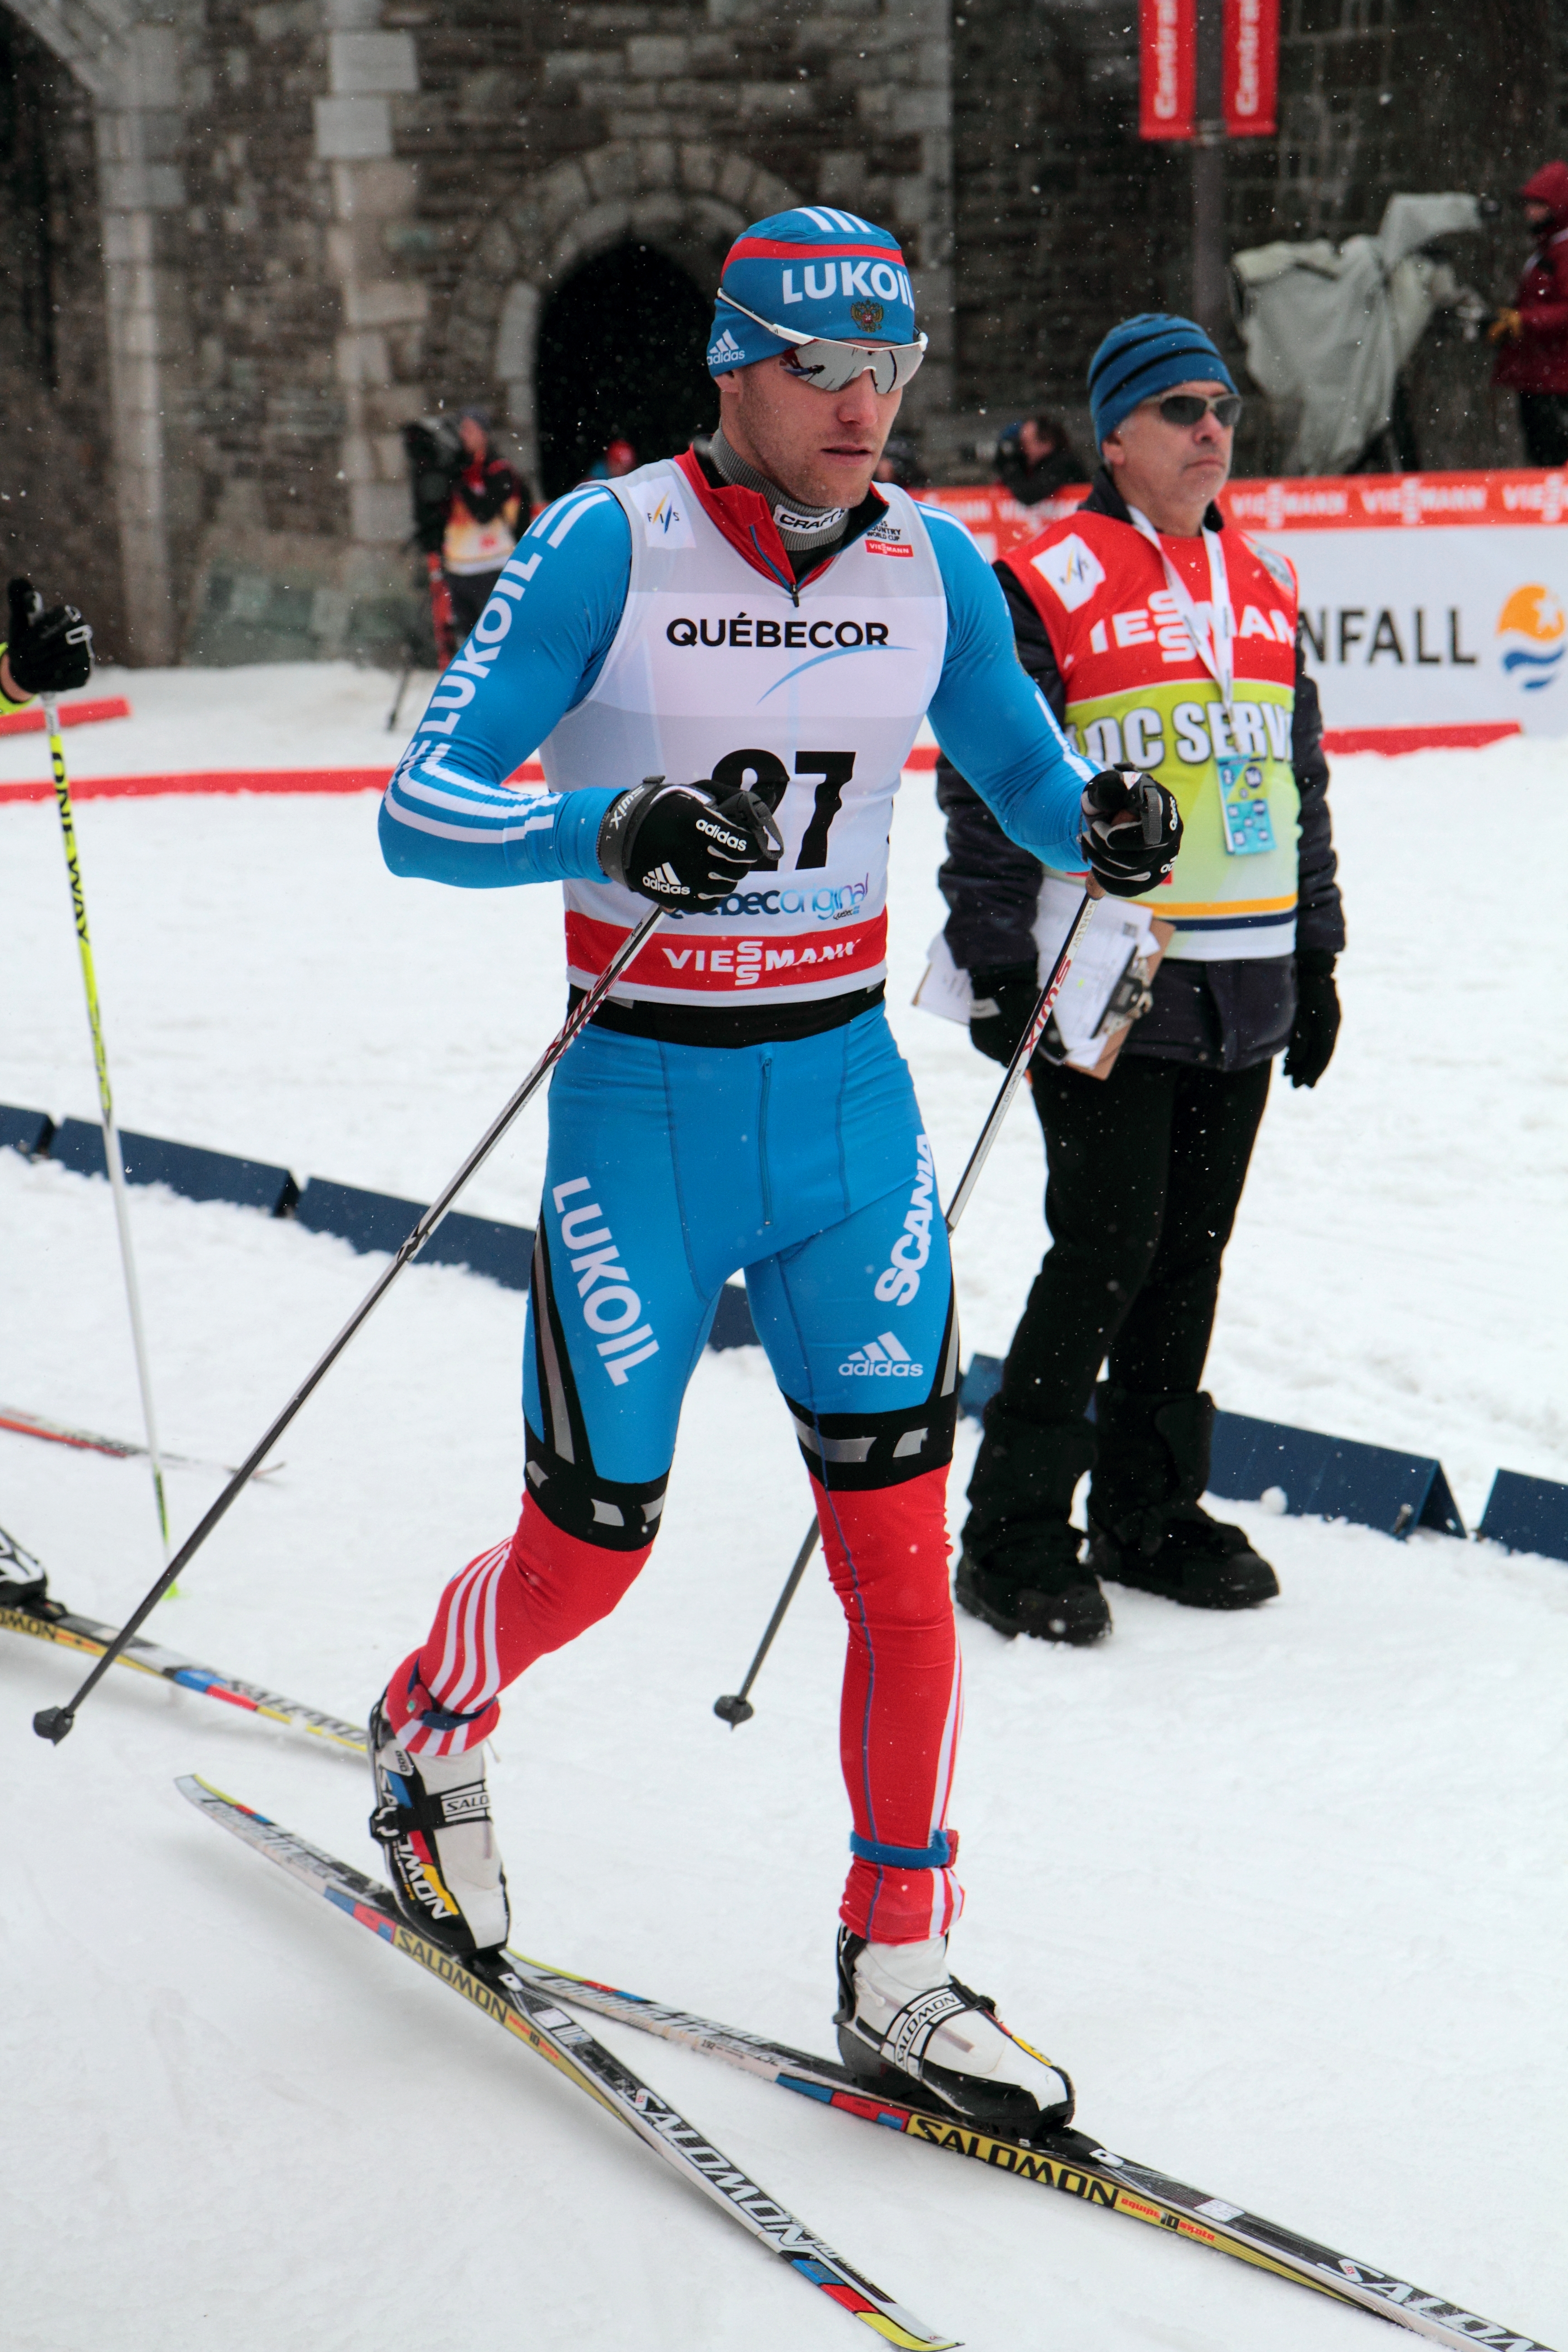 Anton_Gafarov_Cross-Country_World_Cup_2012_Quebec1